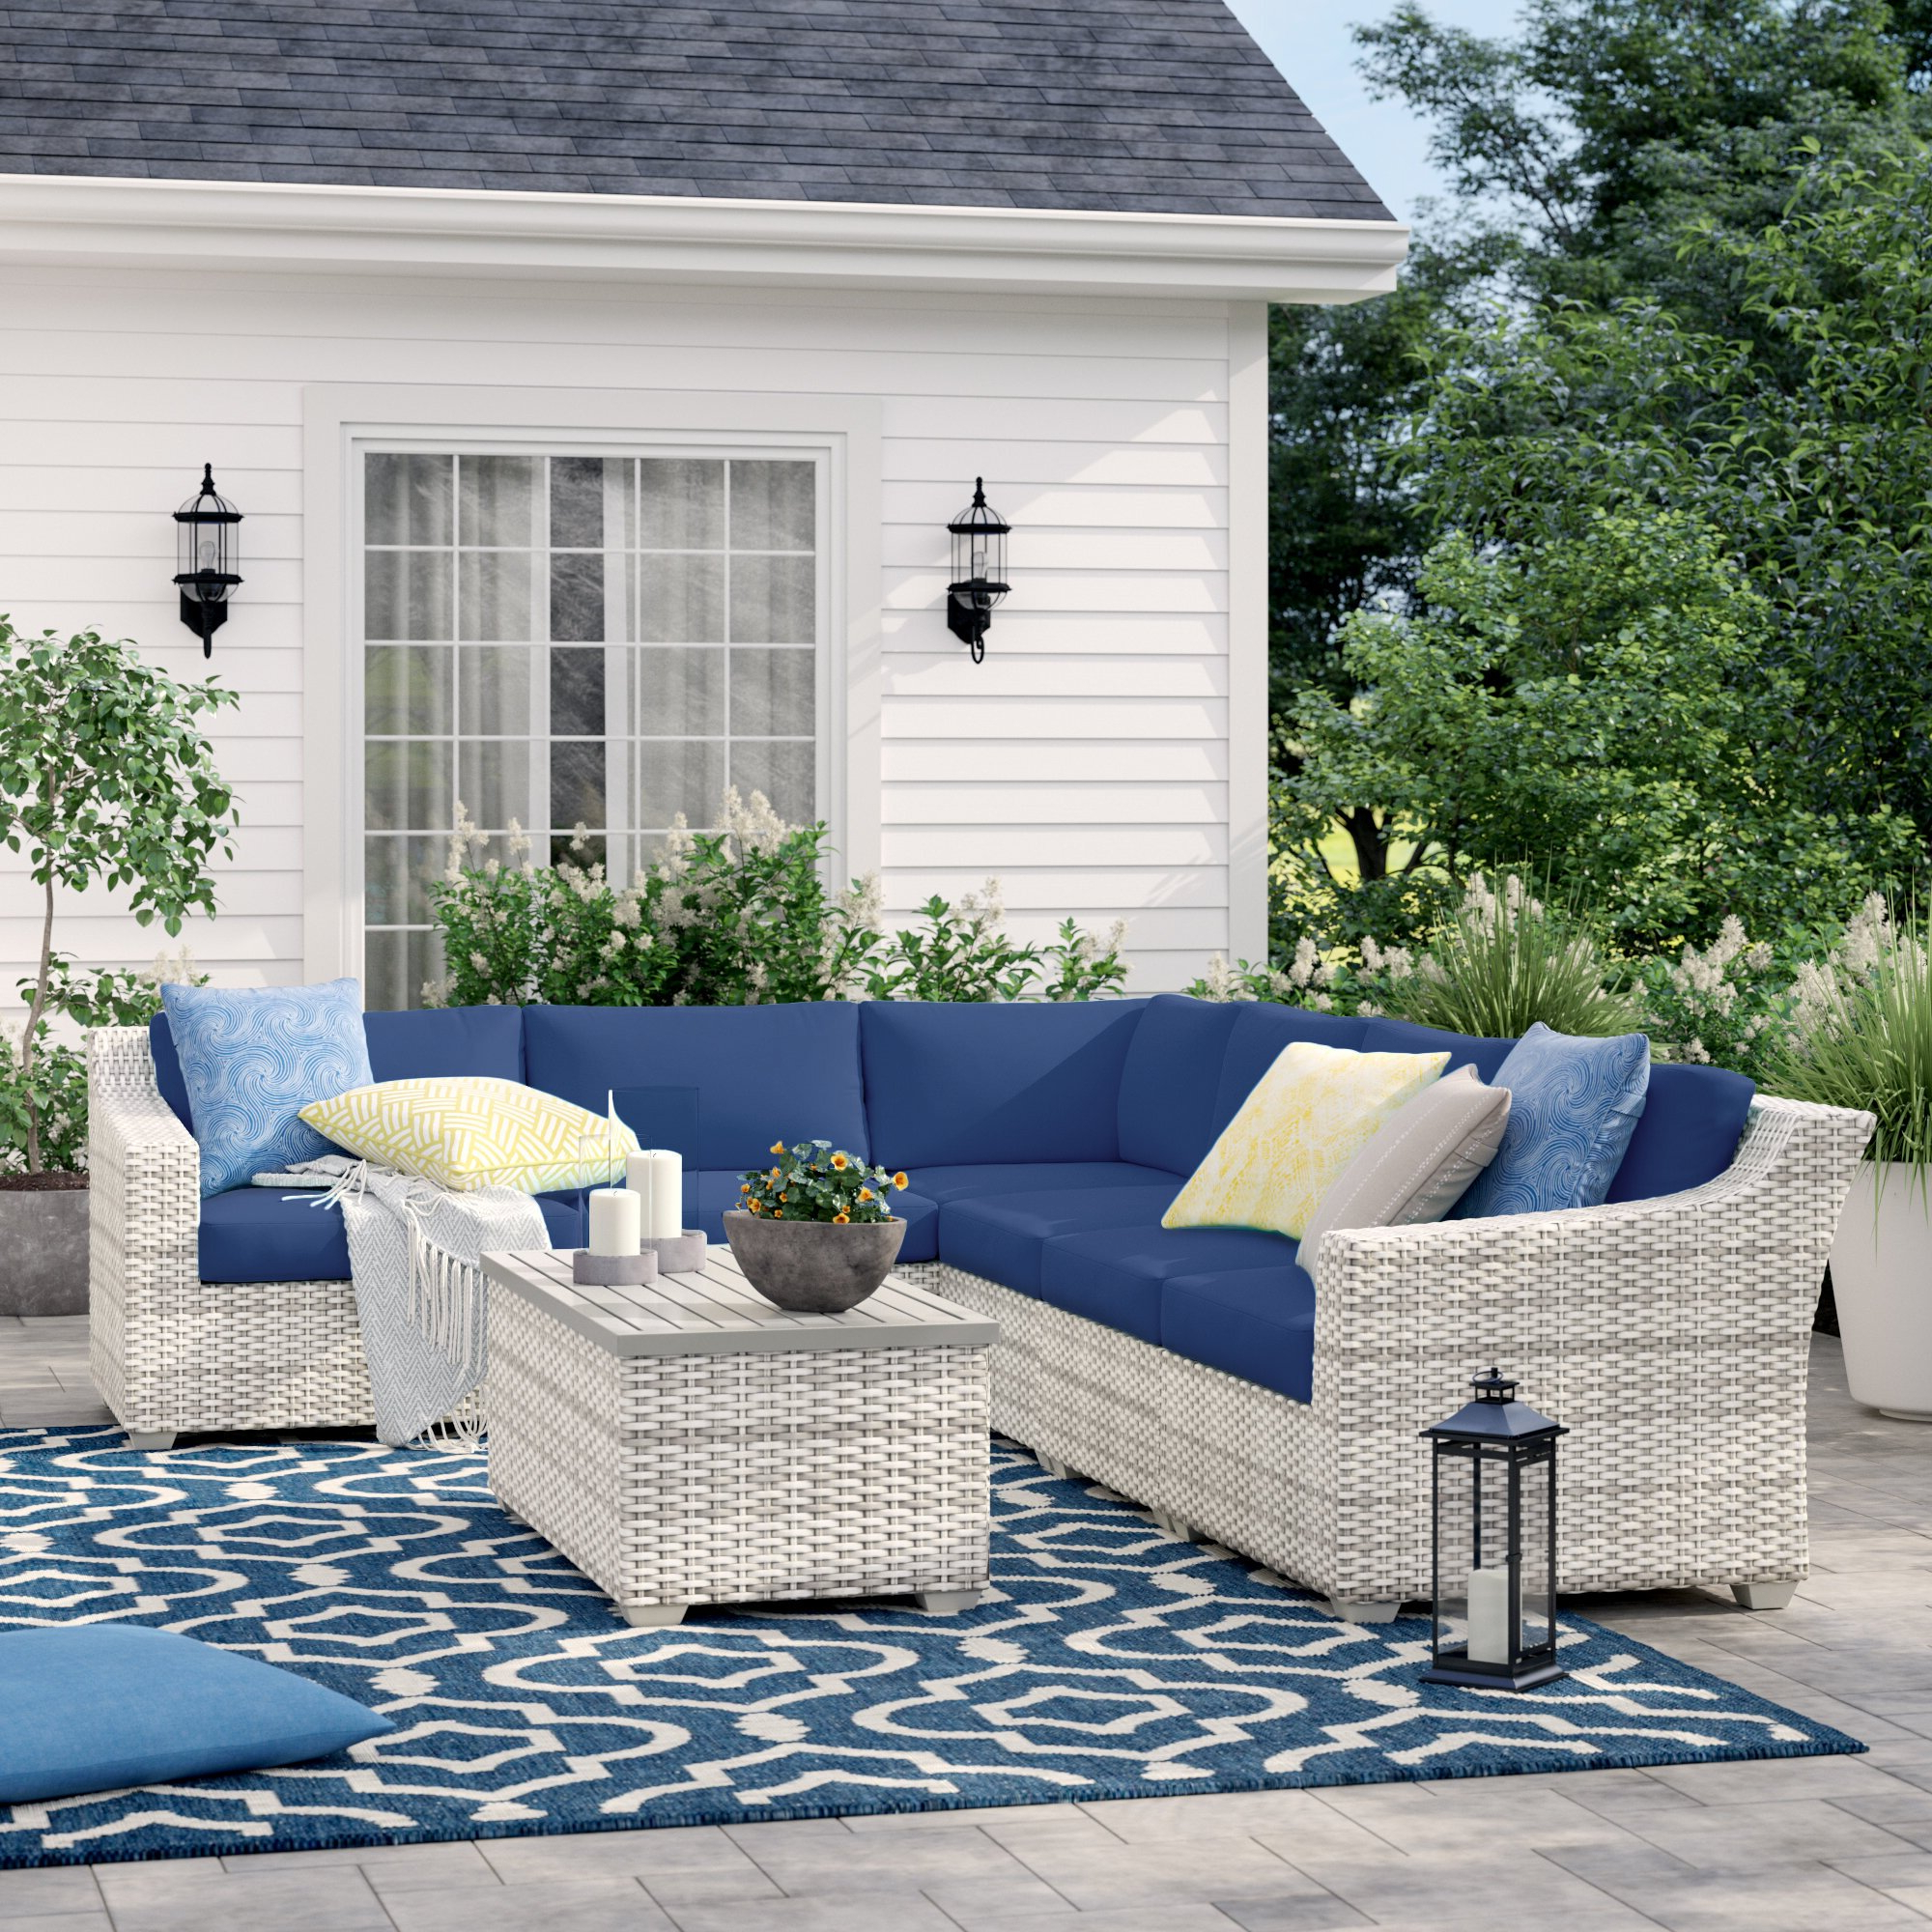 Falmouth Patio Sofas With Cushions Pertaining To Fashionable Falmouth 7 Piece Rattan Sectional Seating Group With Cushions (View 11 of 20)